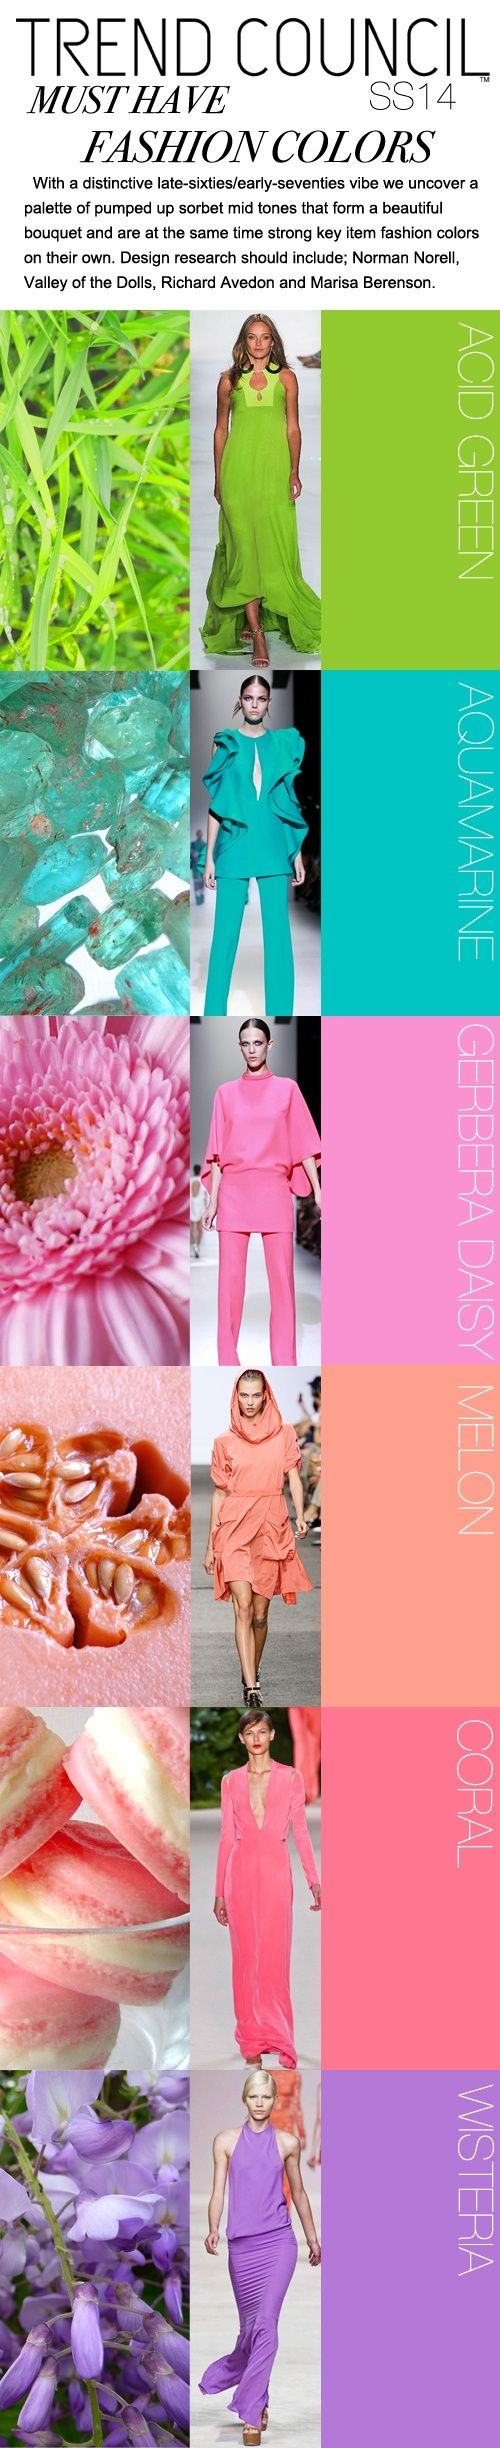 best colour forecasts images on pinterest tights colors and